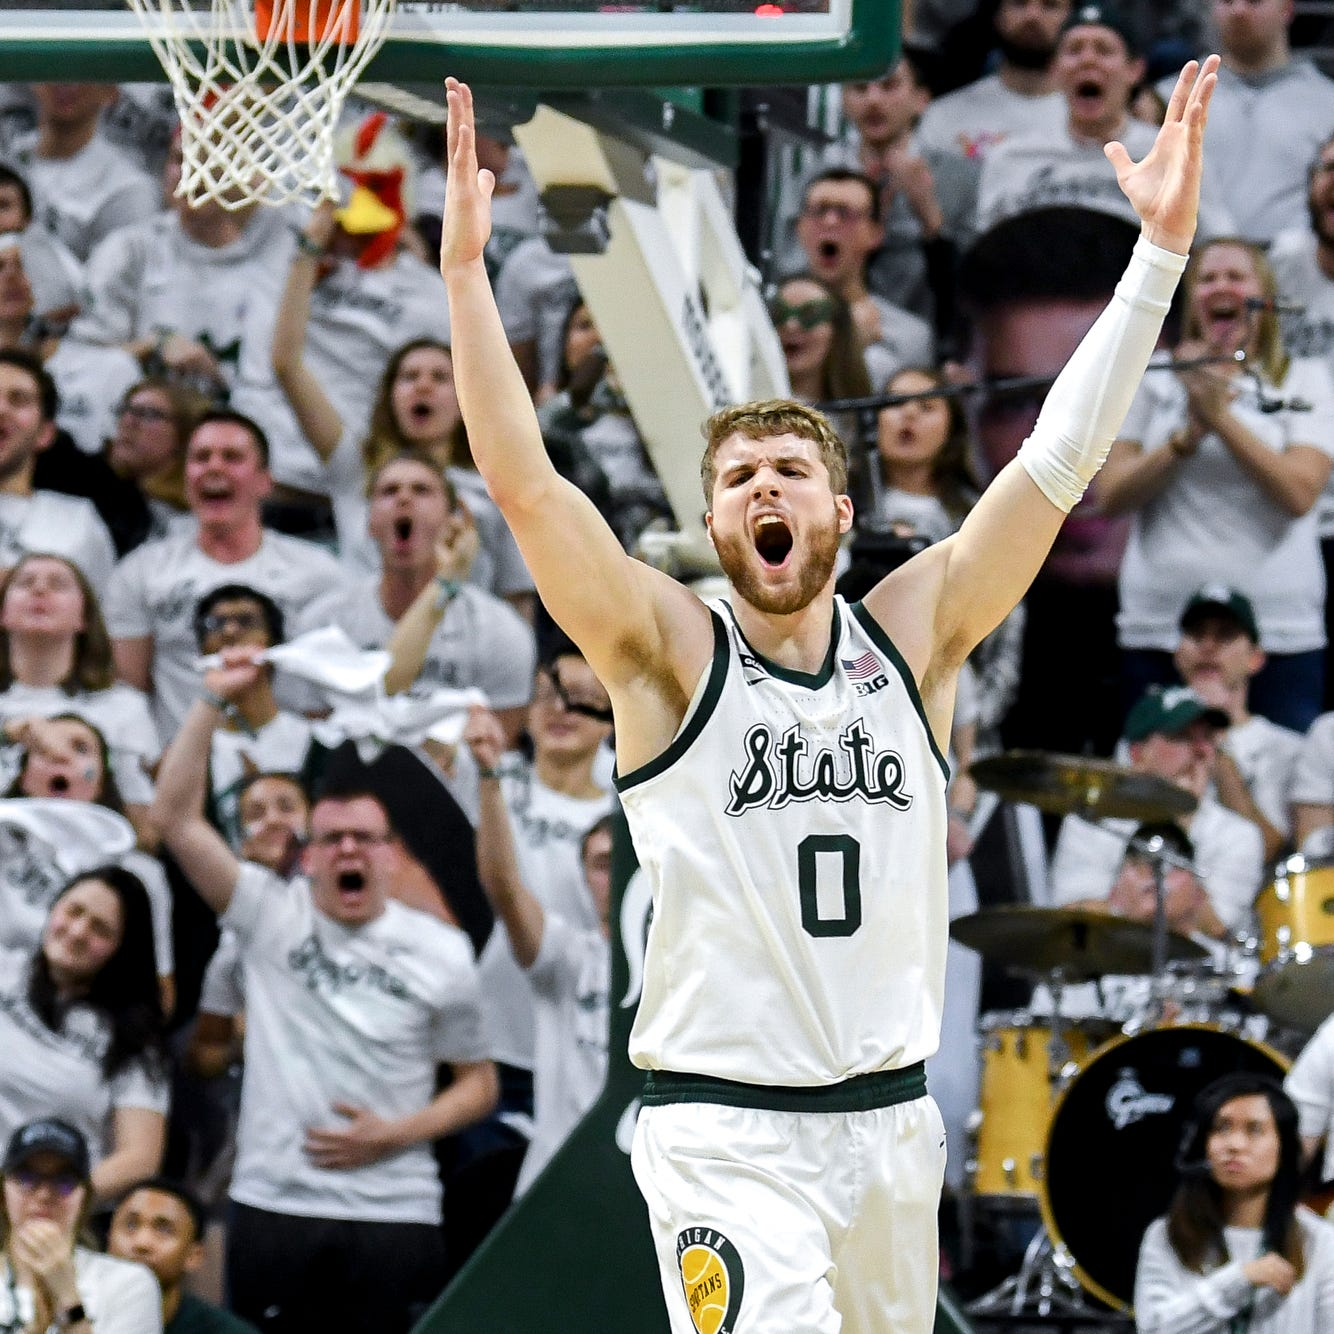 Michigan State's Kyle Ahrens emblematic of Spartans' season so far: Banged-up and emotional